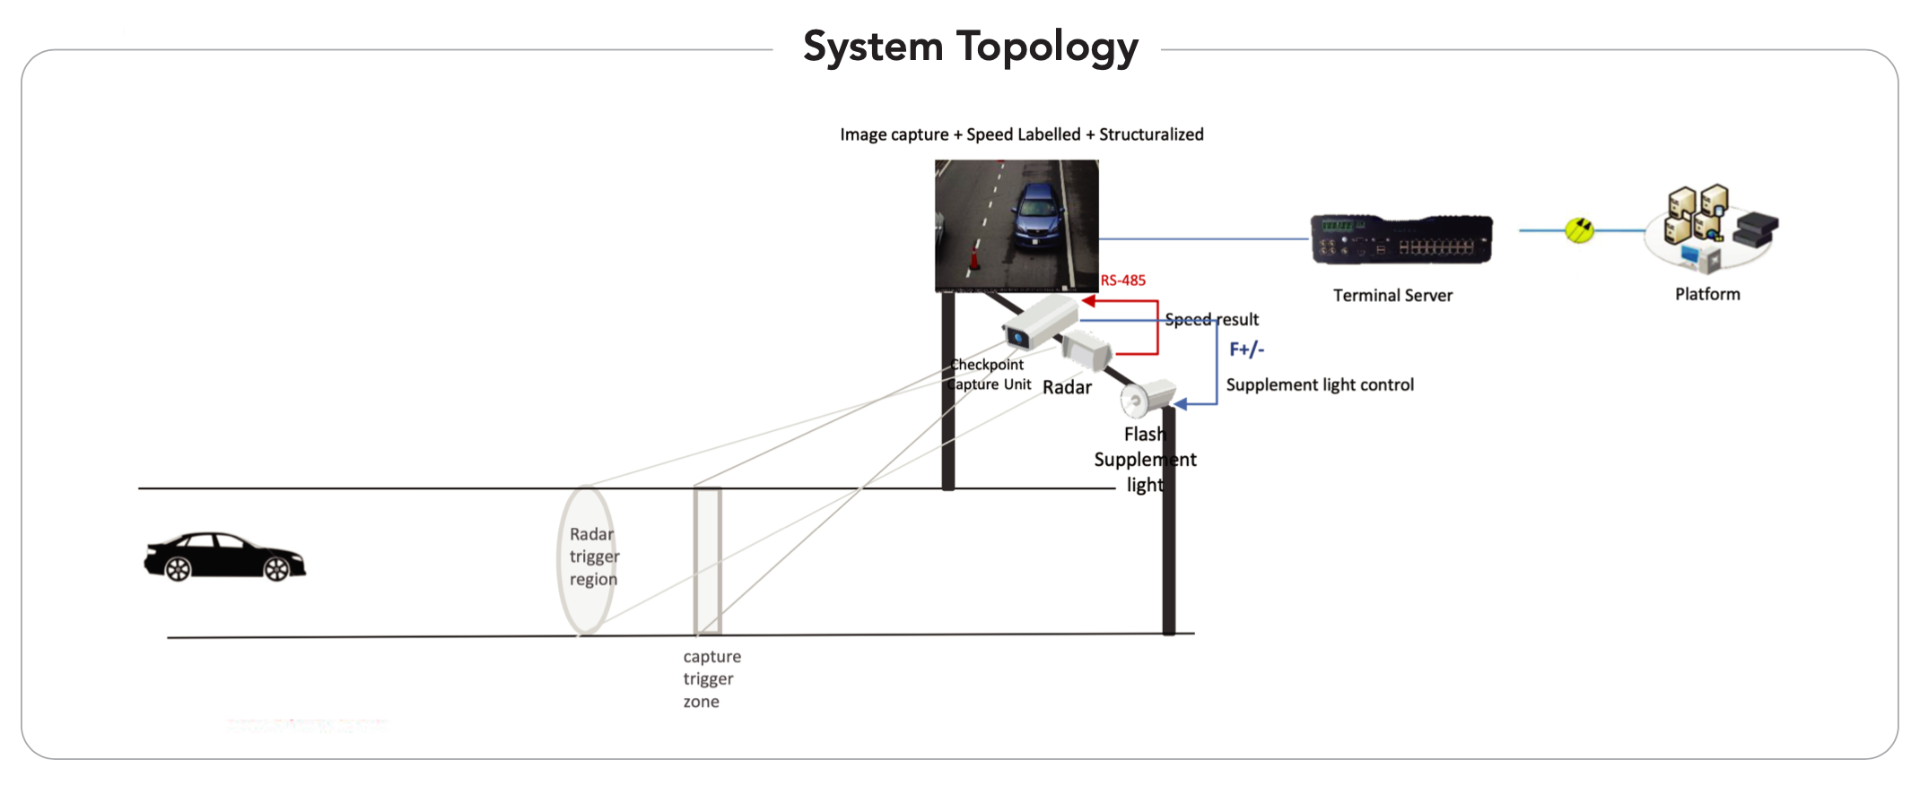 ANPR camera for checkpoint and highway speed camera